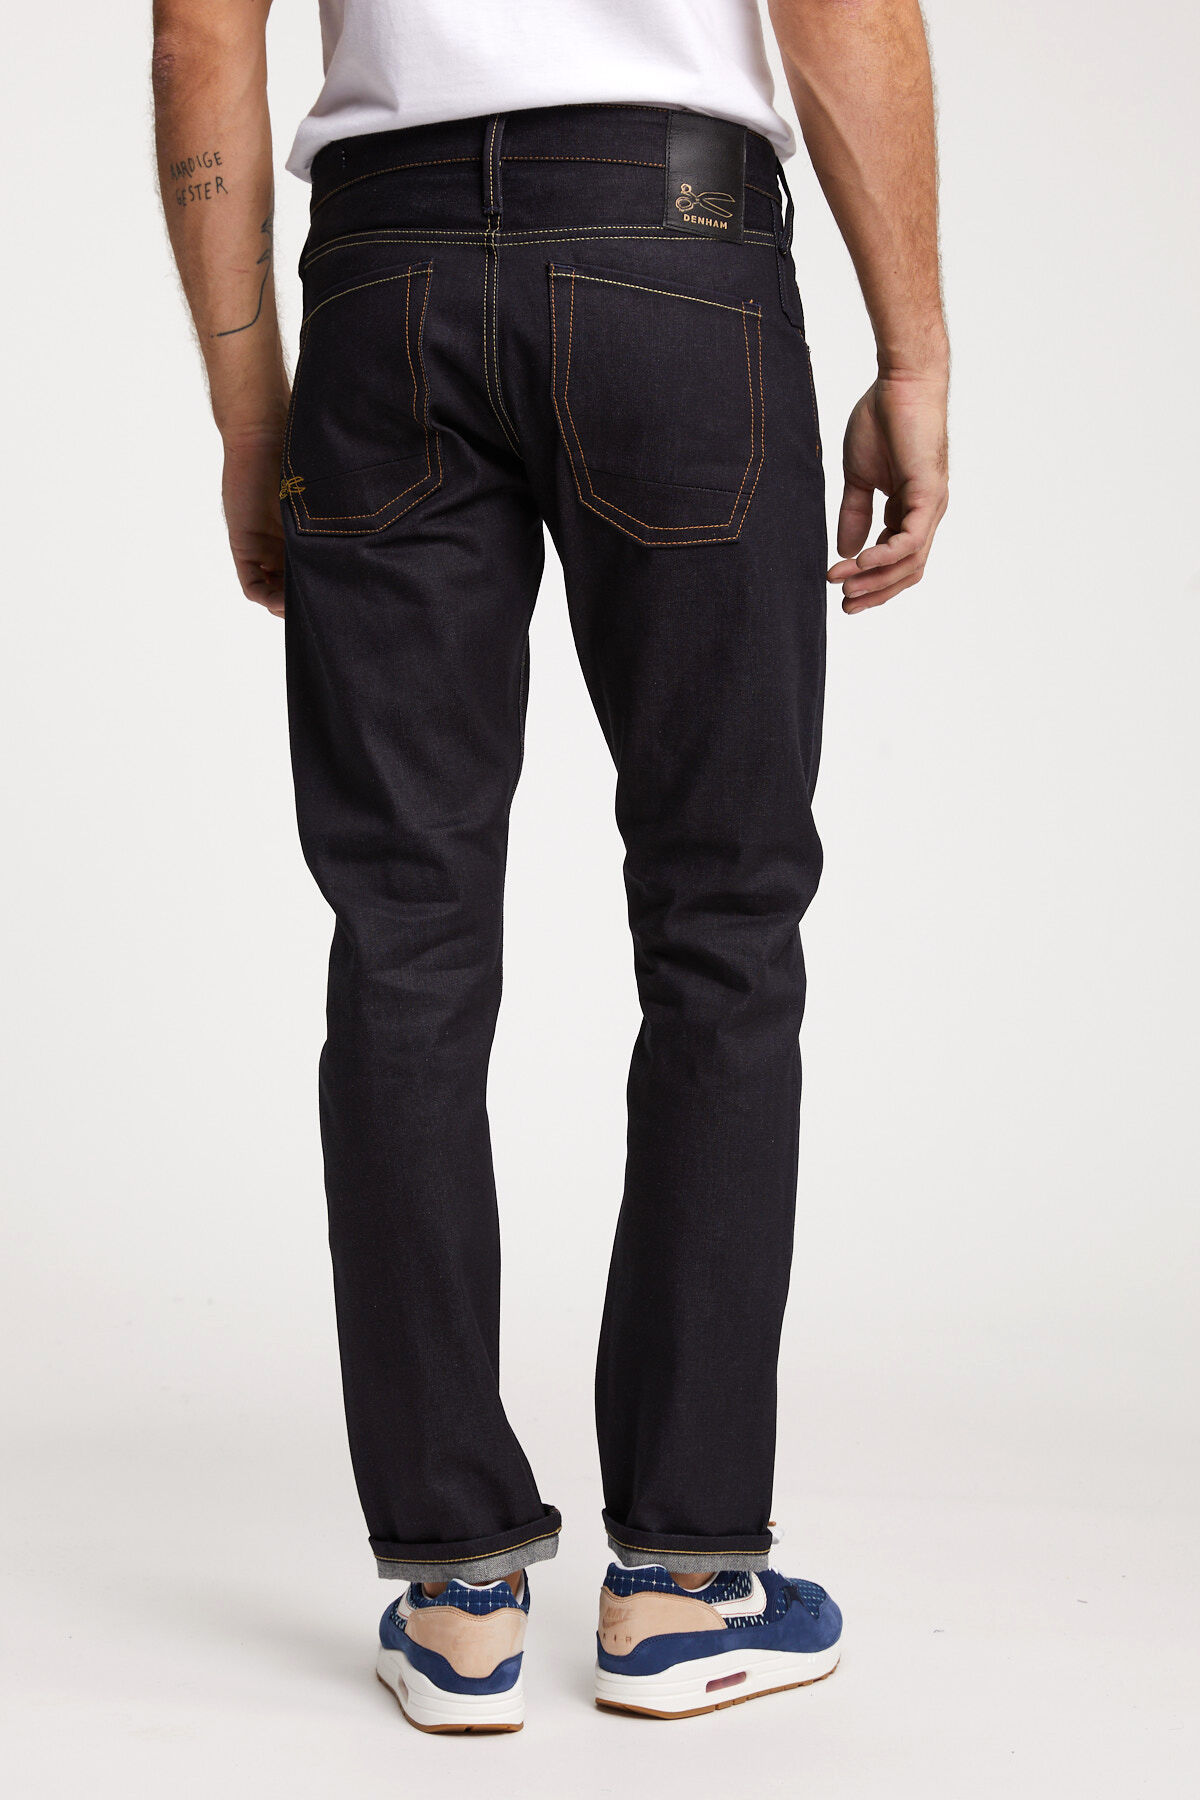 SKIN Raw Selvedge Indigo Denim - Slim Fit